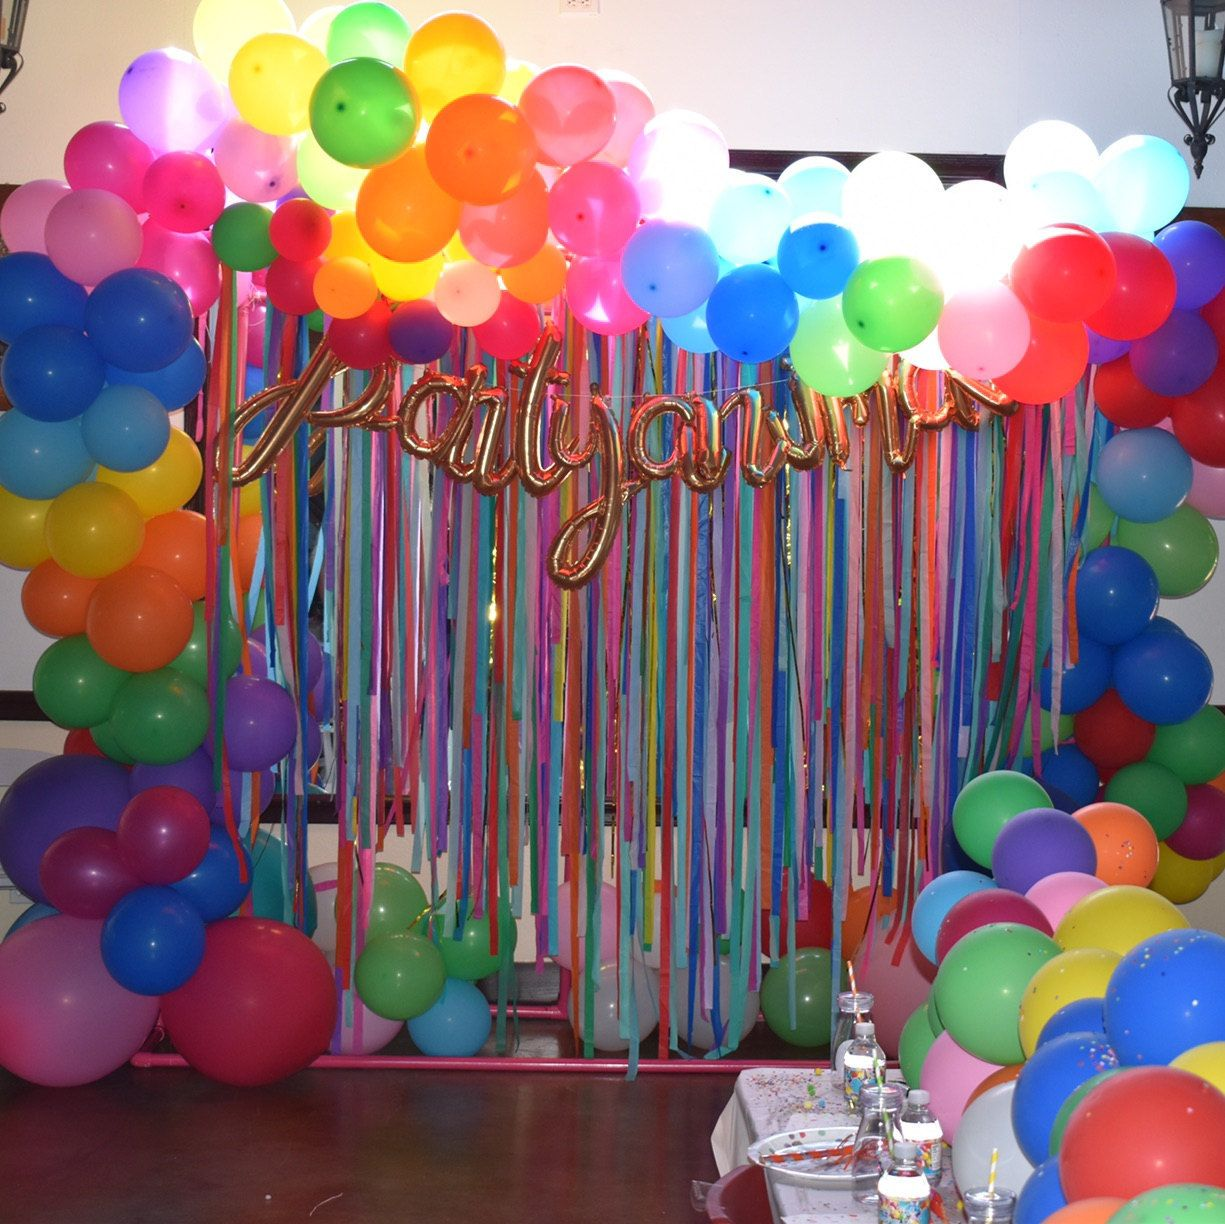 Colorful Backdrop, Wedding Backdrop, Photo Booth, Streamer Backdrop, Fringe Backdrop, Coachella Party Decorations, Bachelorette Party